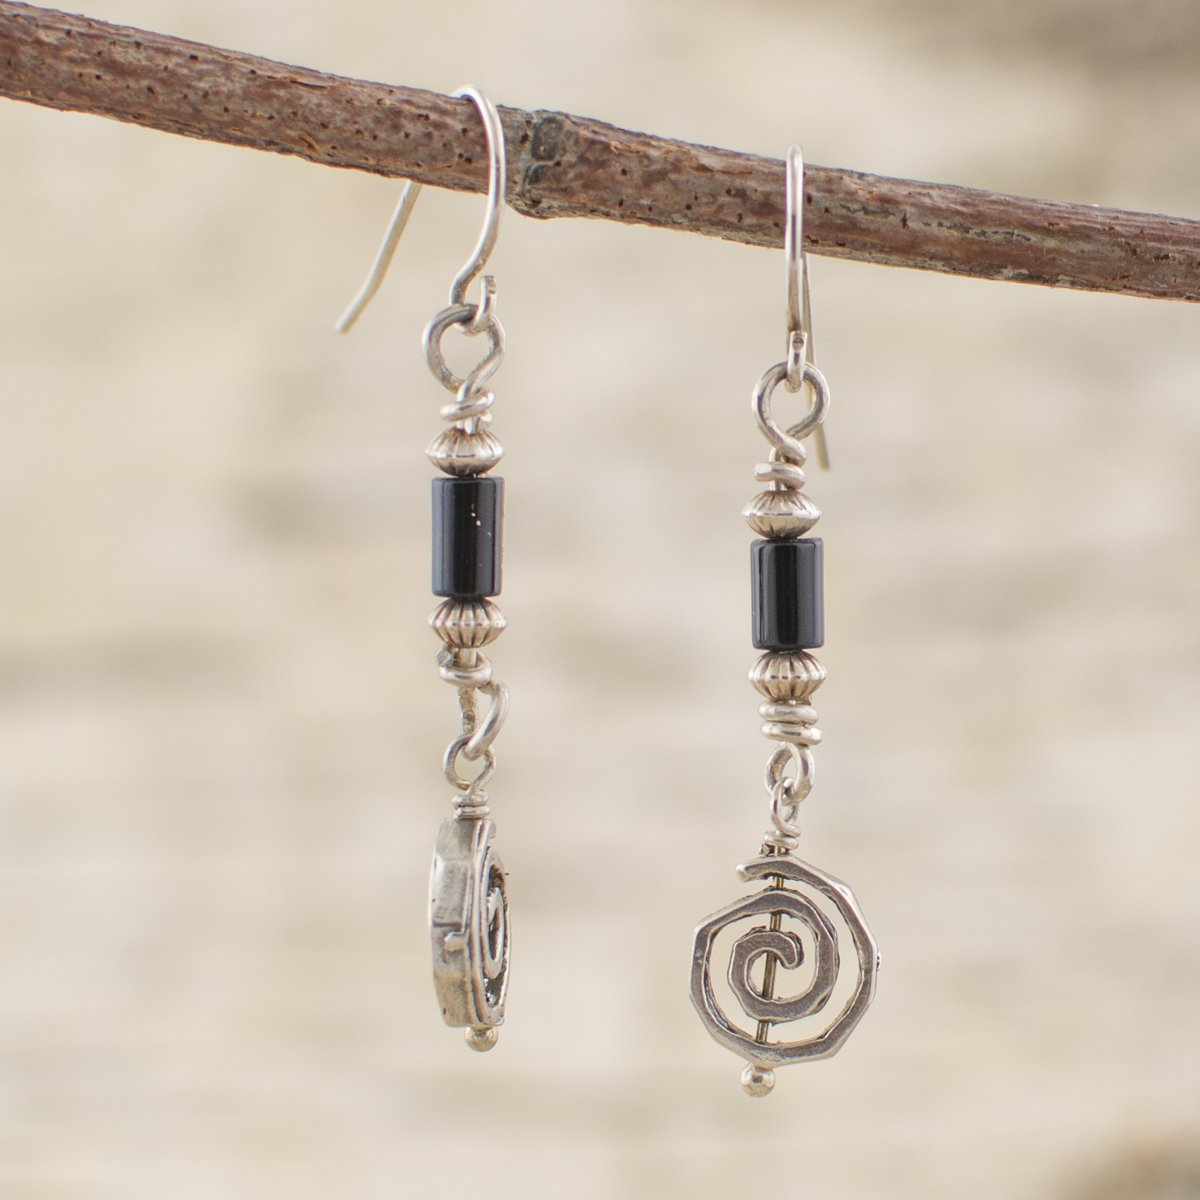 Onyx Sterling Silver Swirl Dangle Earrings for Focus